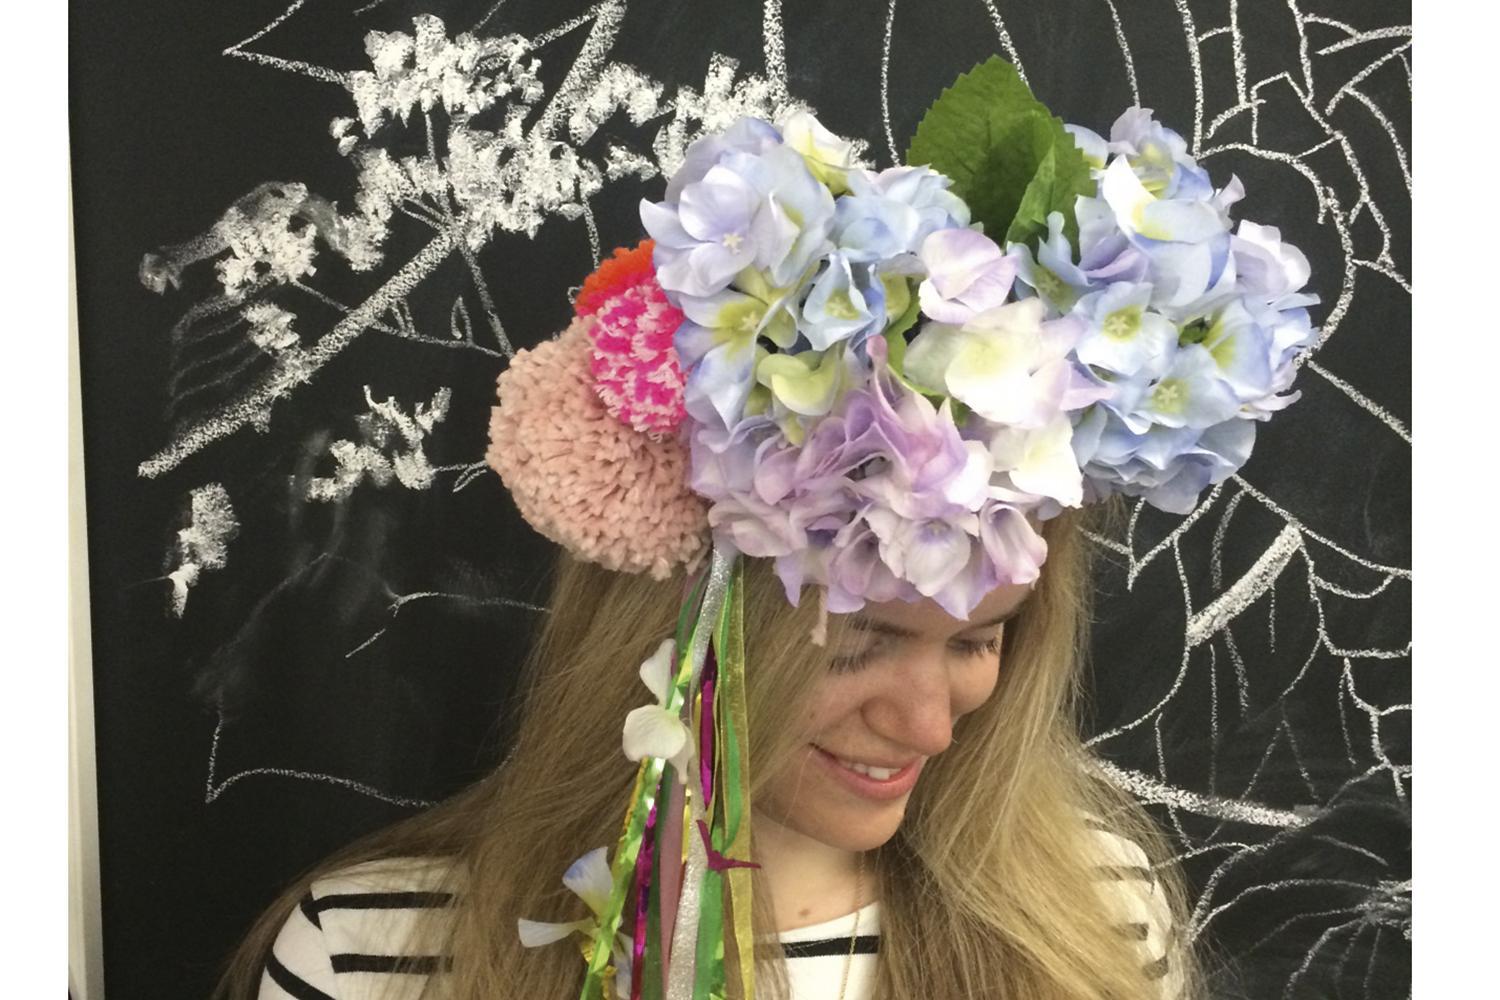 Like the look of this floral headband? Here's how to make your own, and a very special invite http://t.co/BCHbqRcAFX http://t.co/5mtbVIO2WM